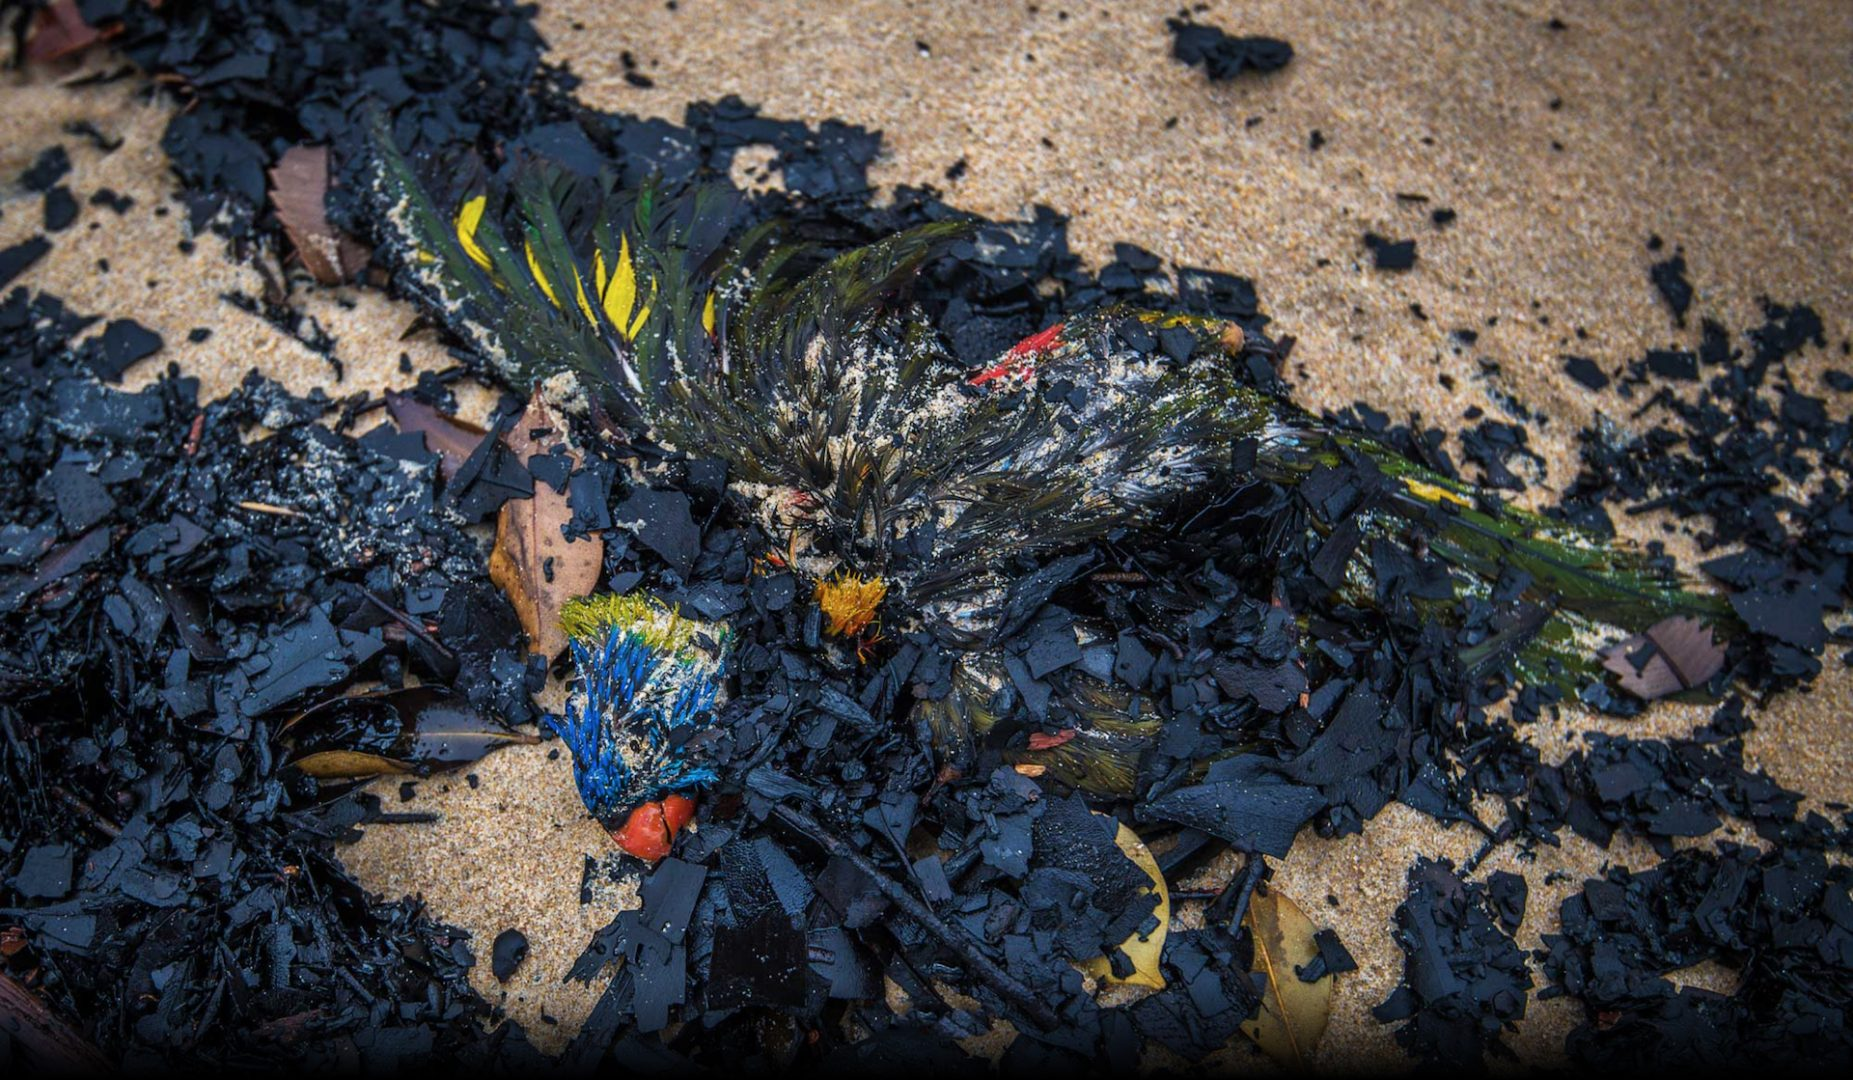 Thousands of birds, like this Rainbow Lorikeet, washed up dead  amongst charcoal on Mallacoota beach, January 2020. Photo: Justin McManus.